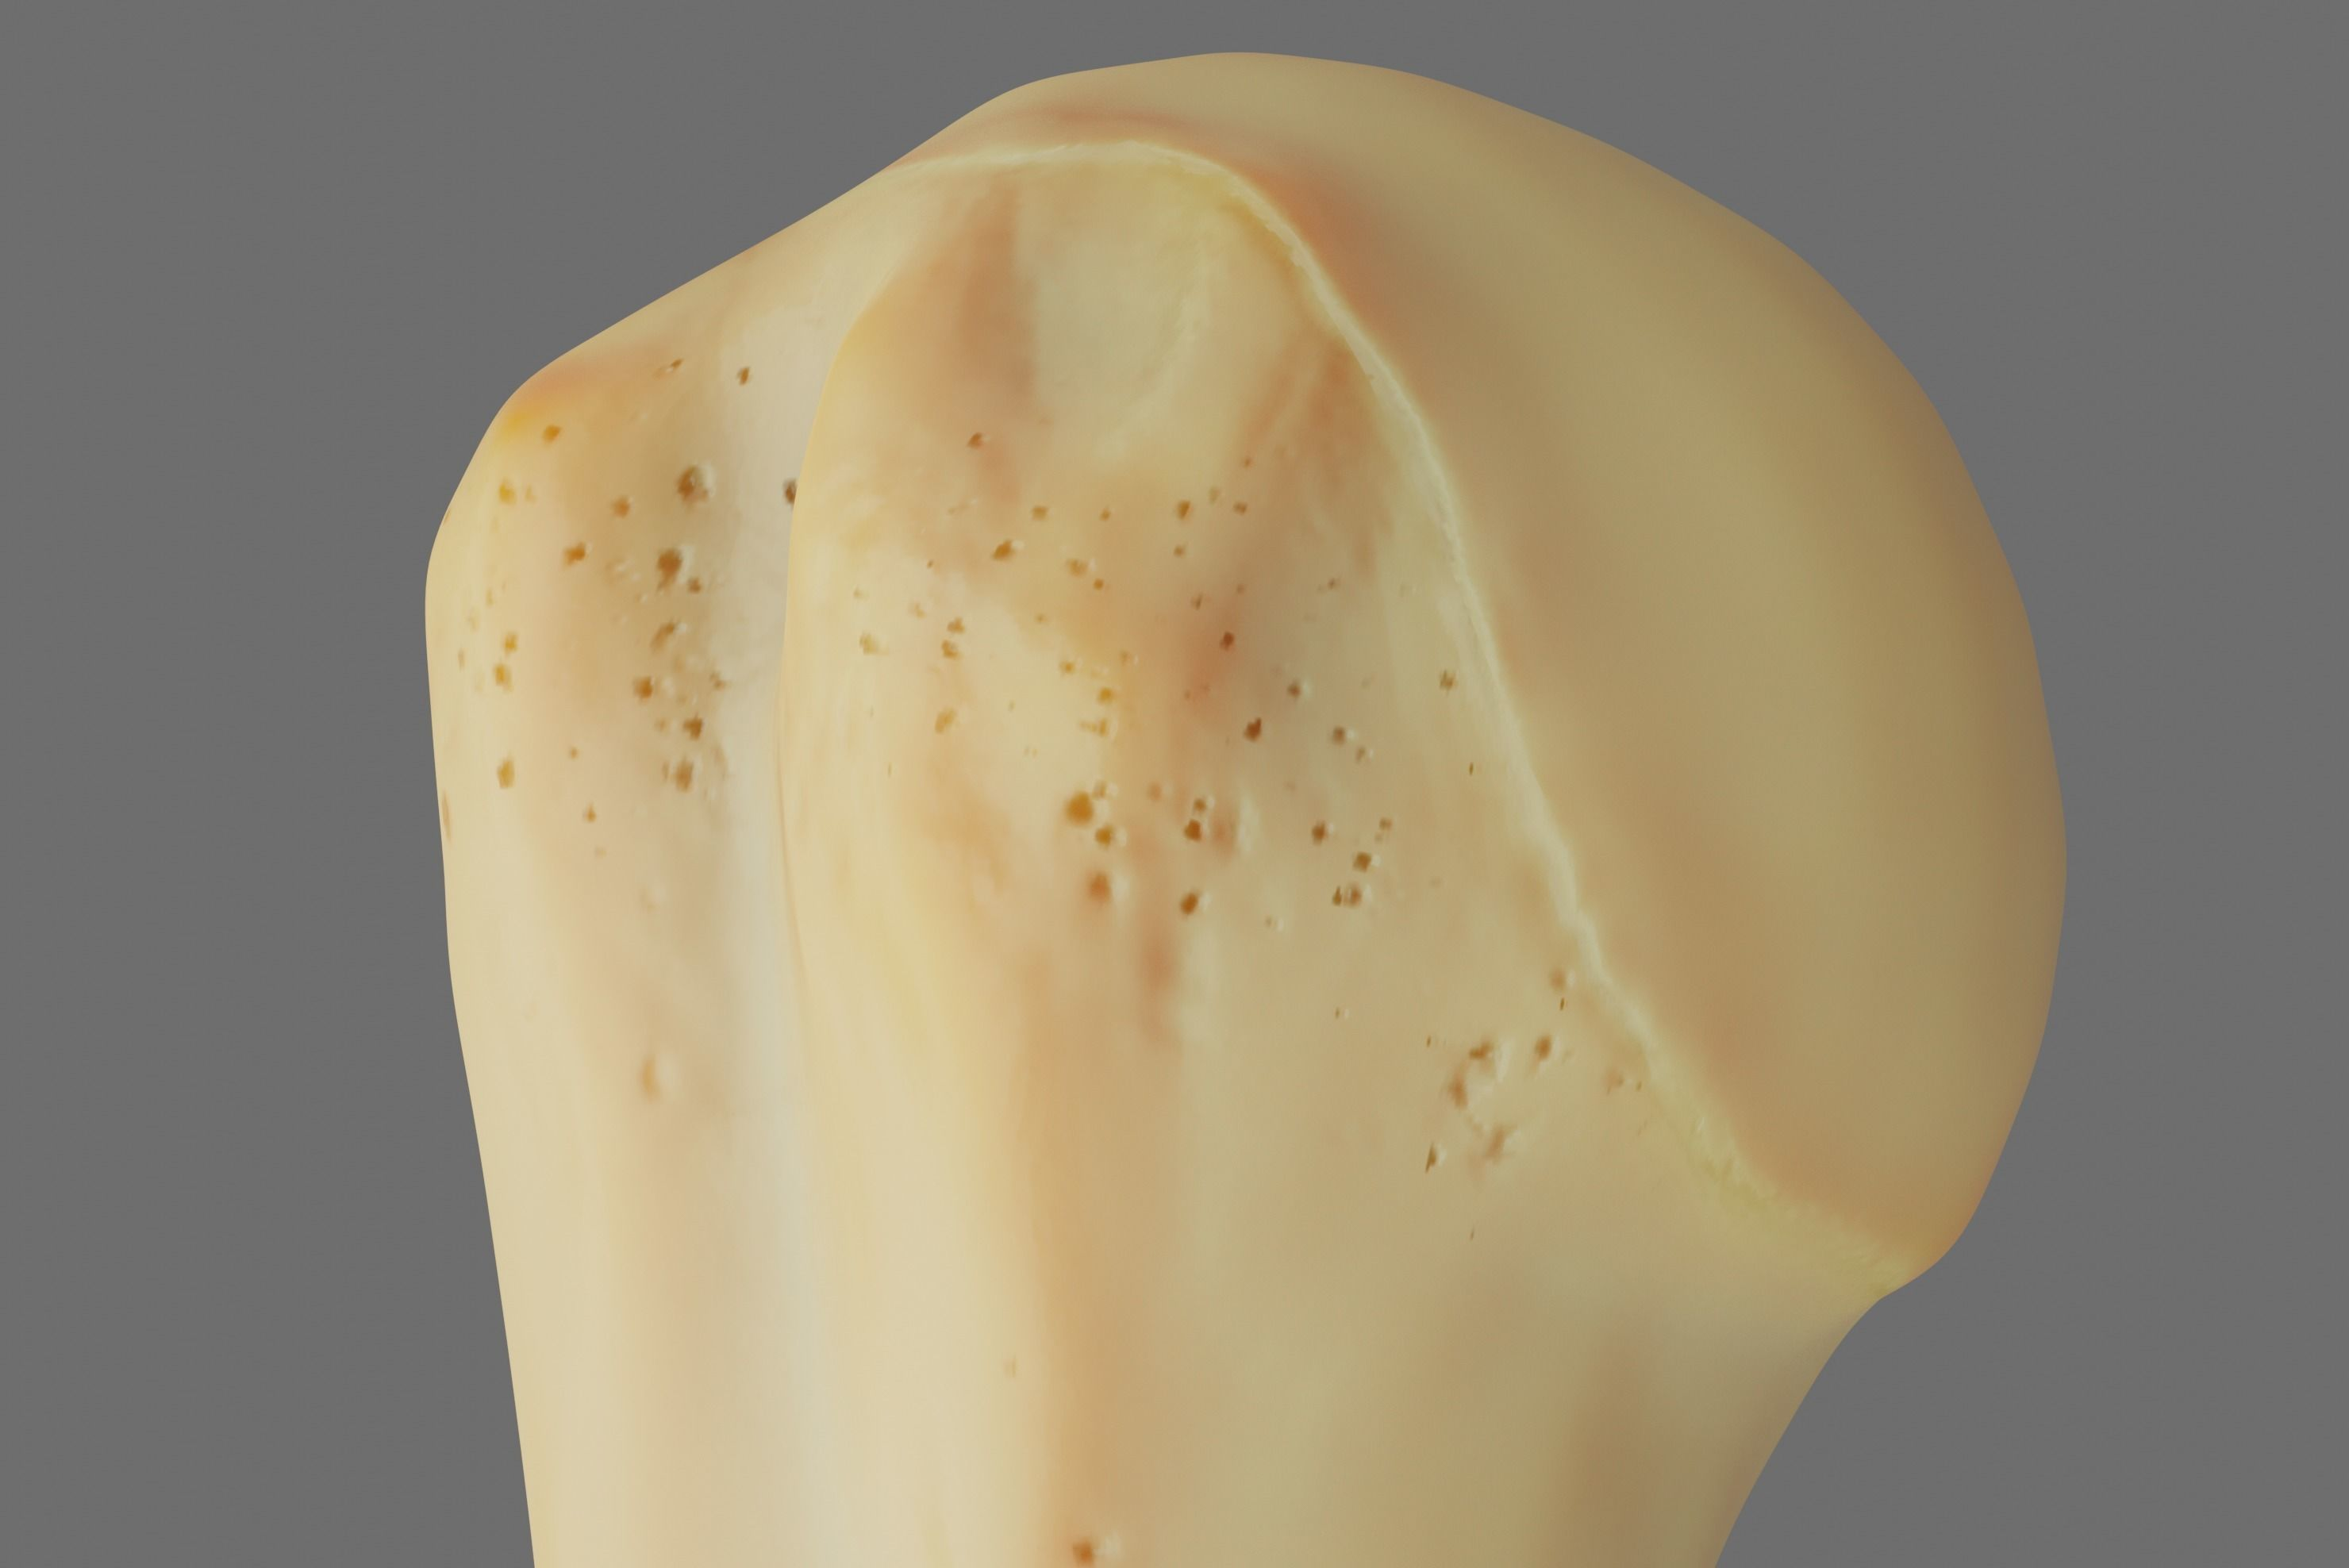 Humerus 3d Model - Anatomically Accurate